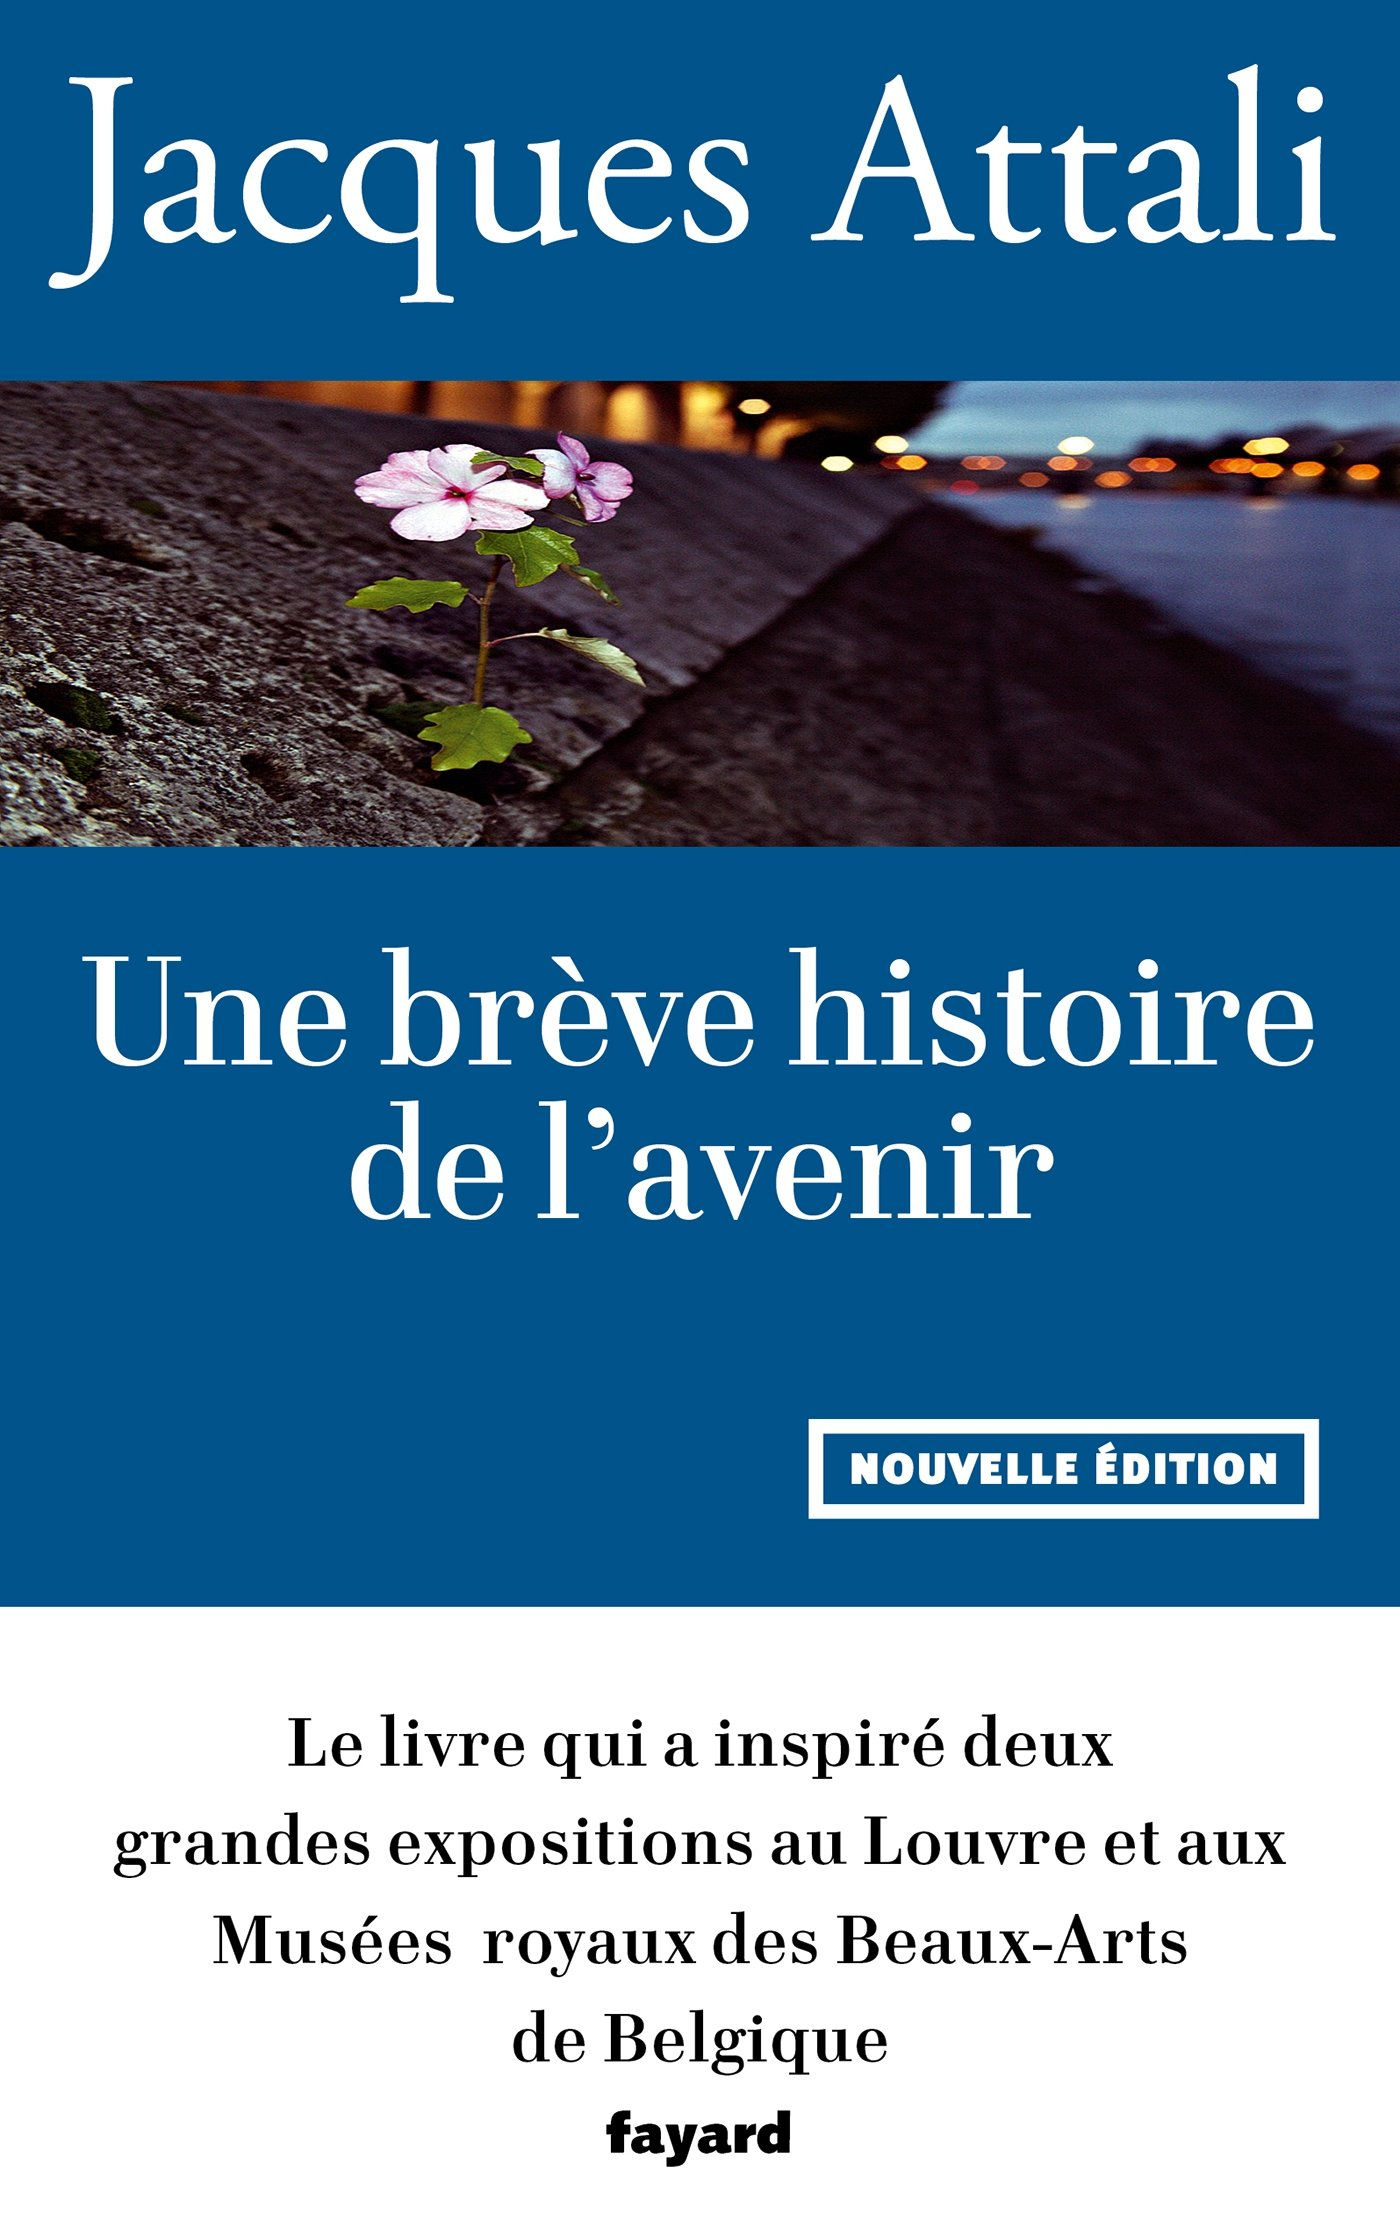 Attali - Une breve histoire de l'avenir